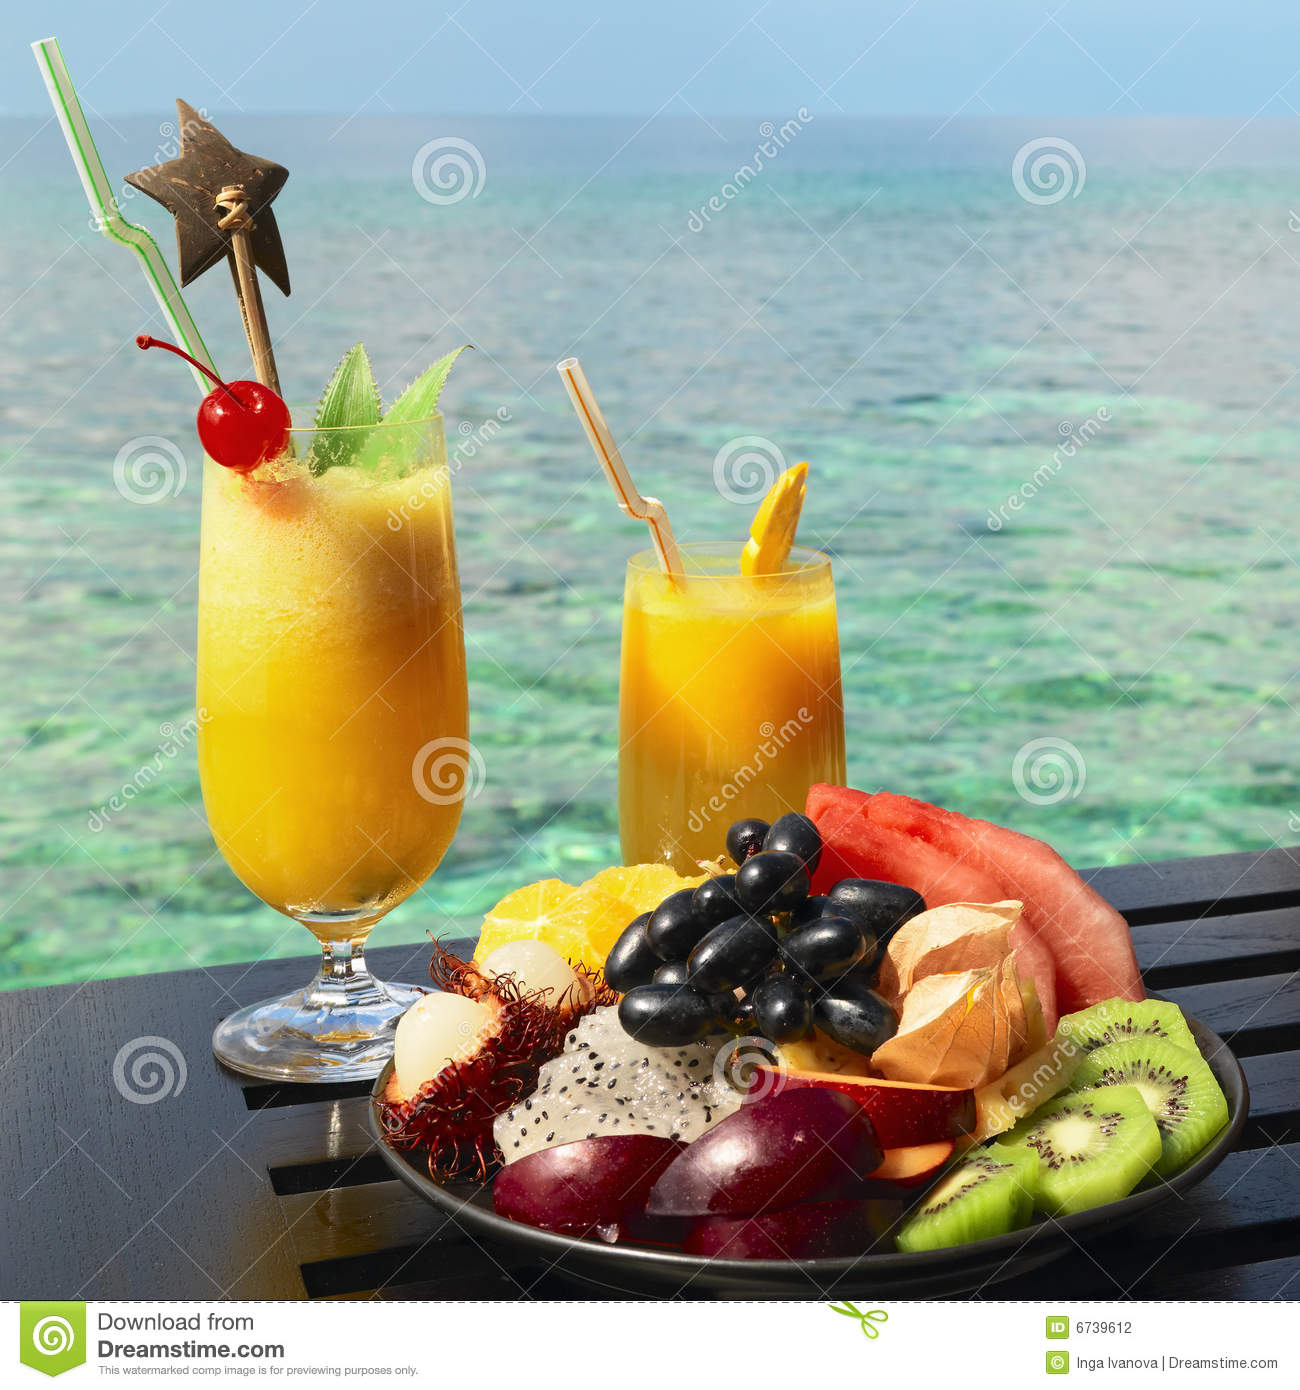 Served table at tropical resort